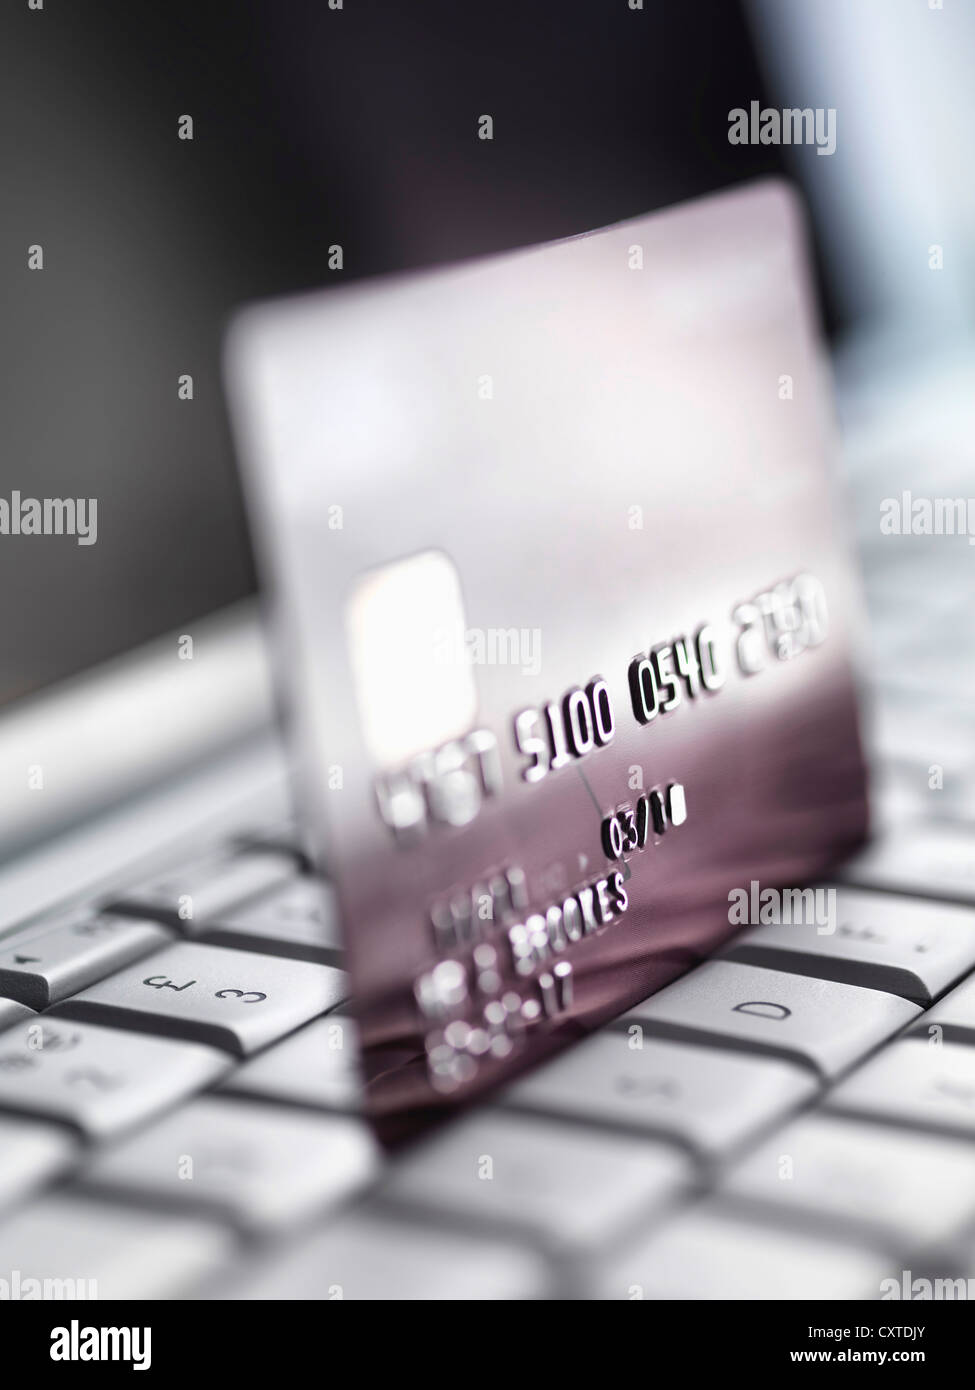 Close up of credit card on keyboard Stock Photo